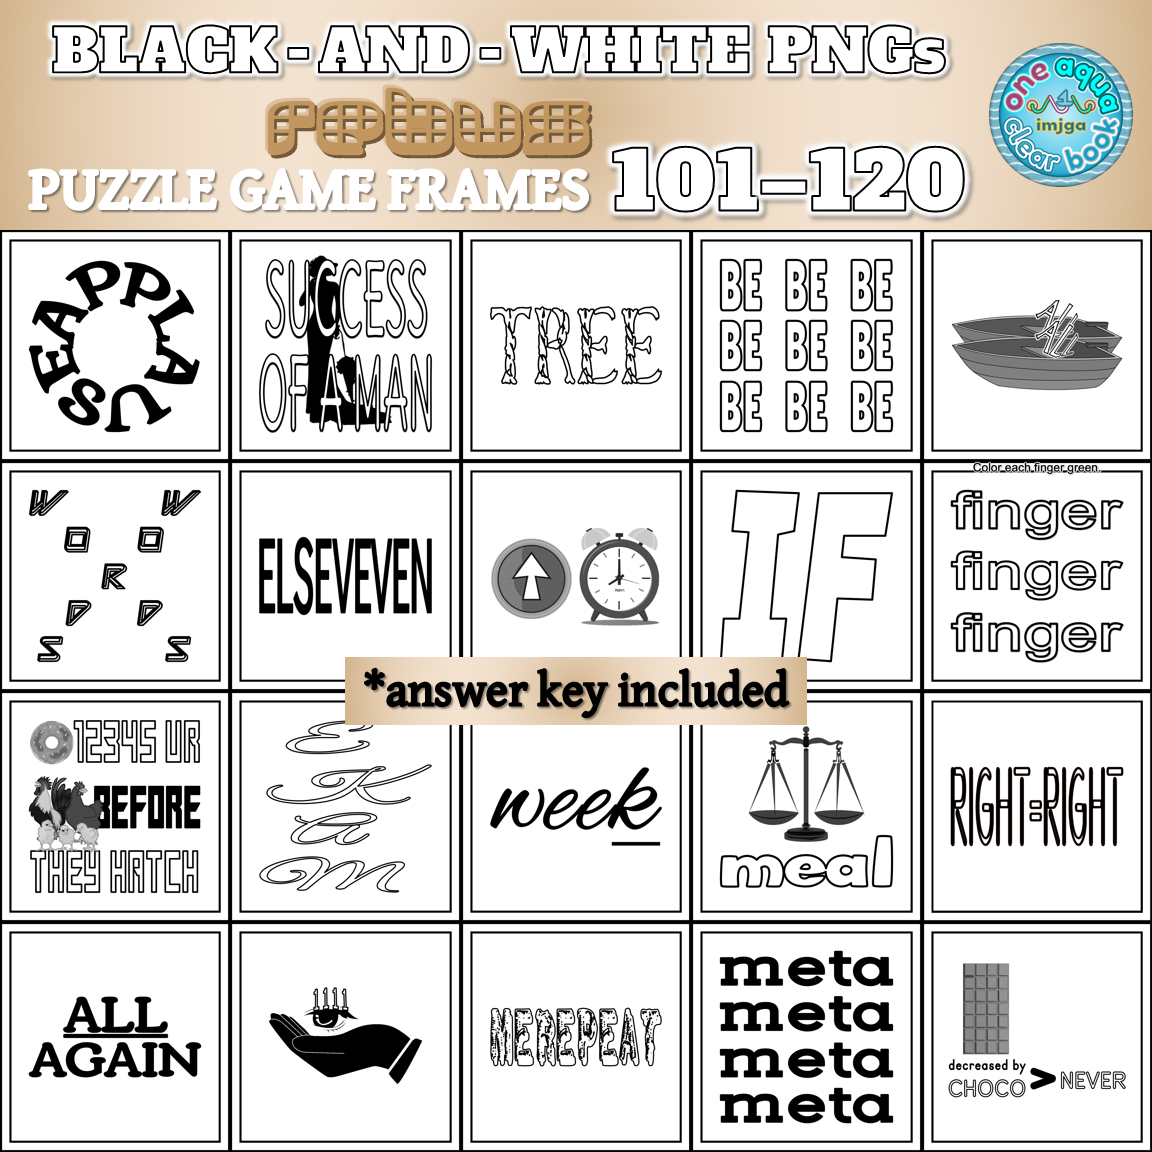 Black-and-White Rebus Puzzle Frames 101-120 PNGs